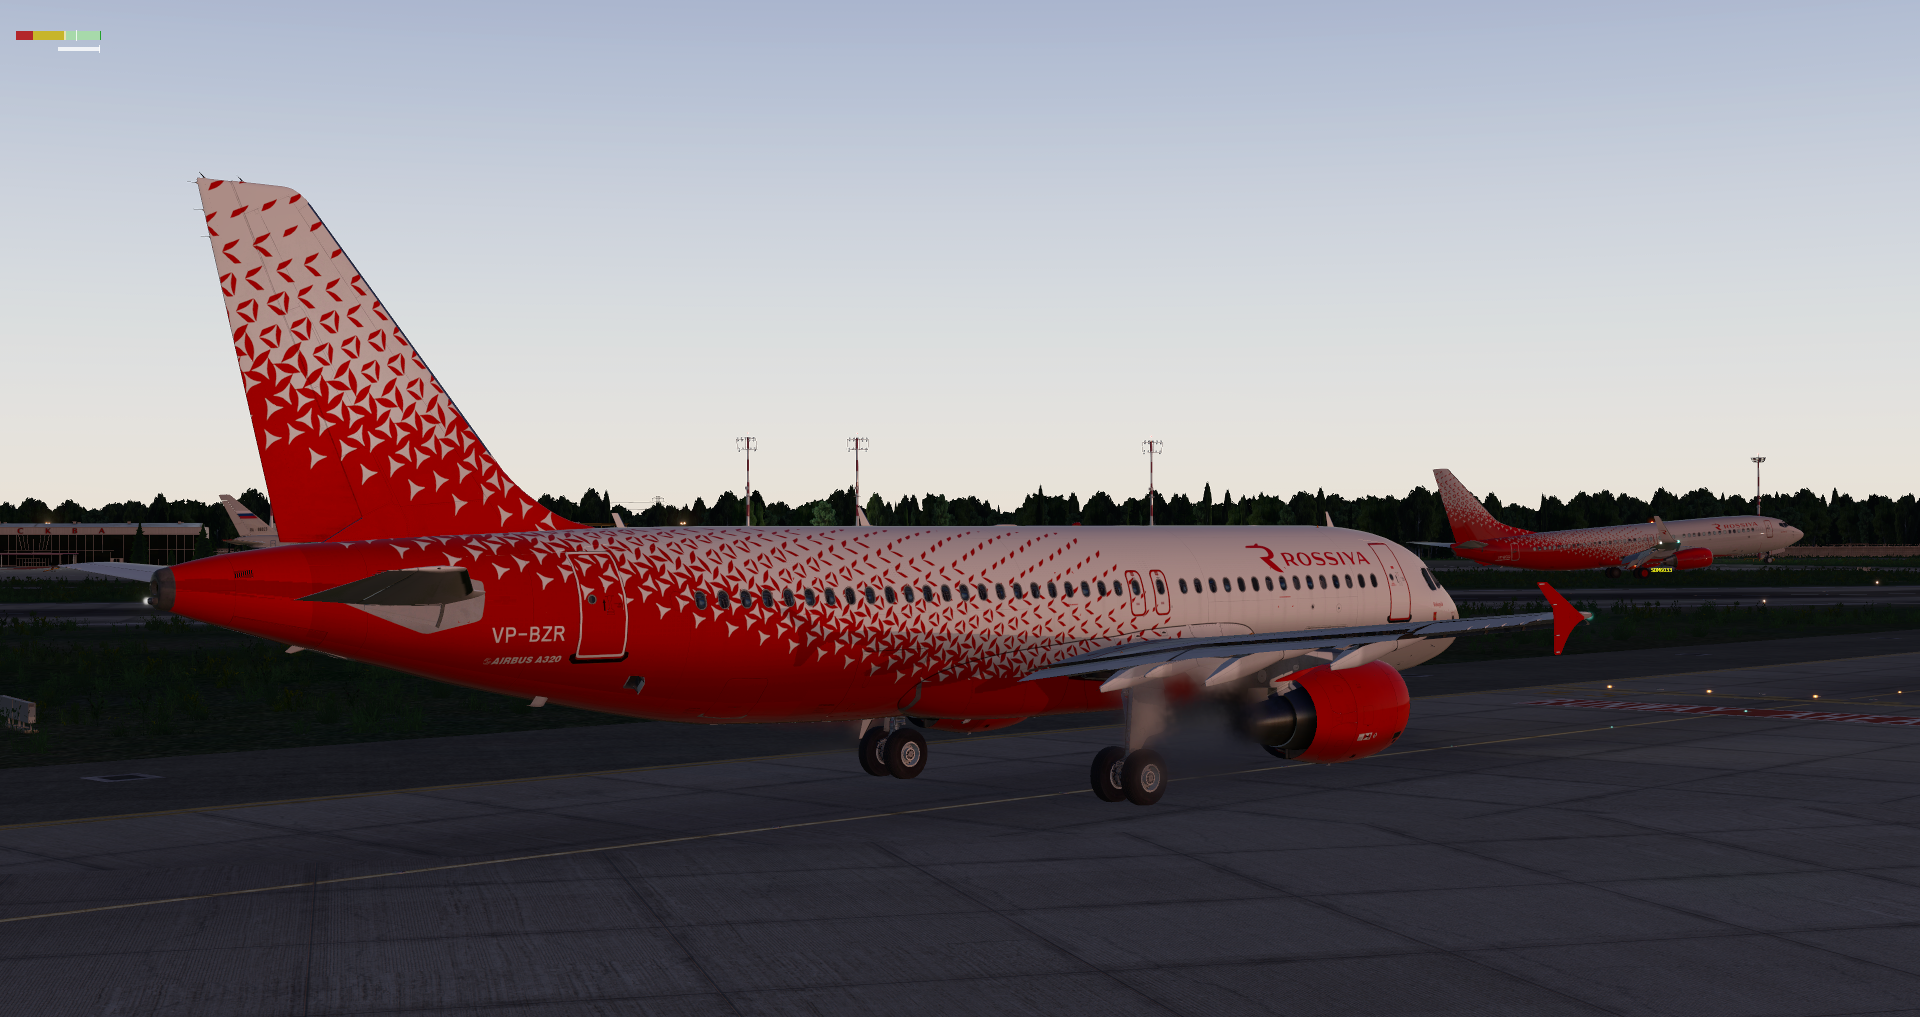 A320 - 2019-07-28 19.59.41.png